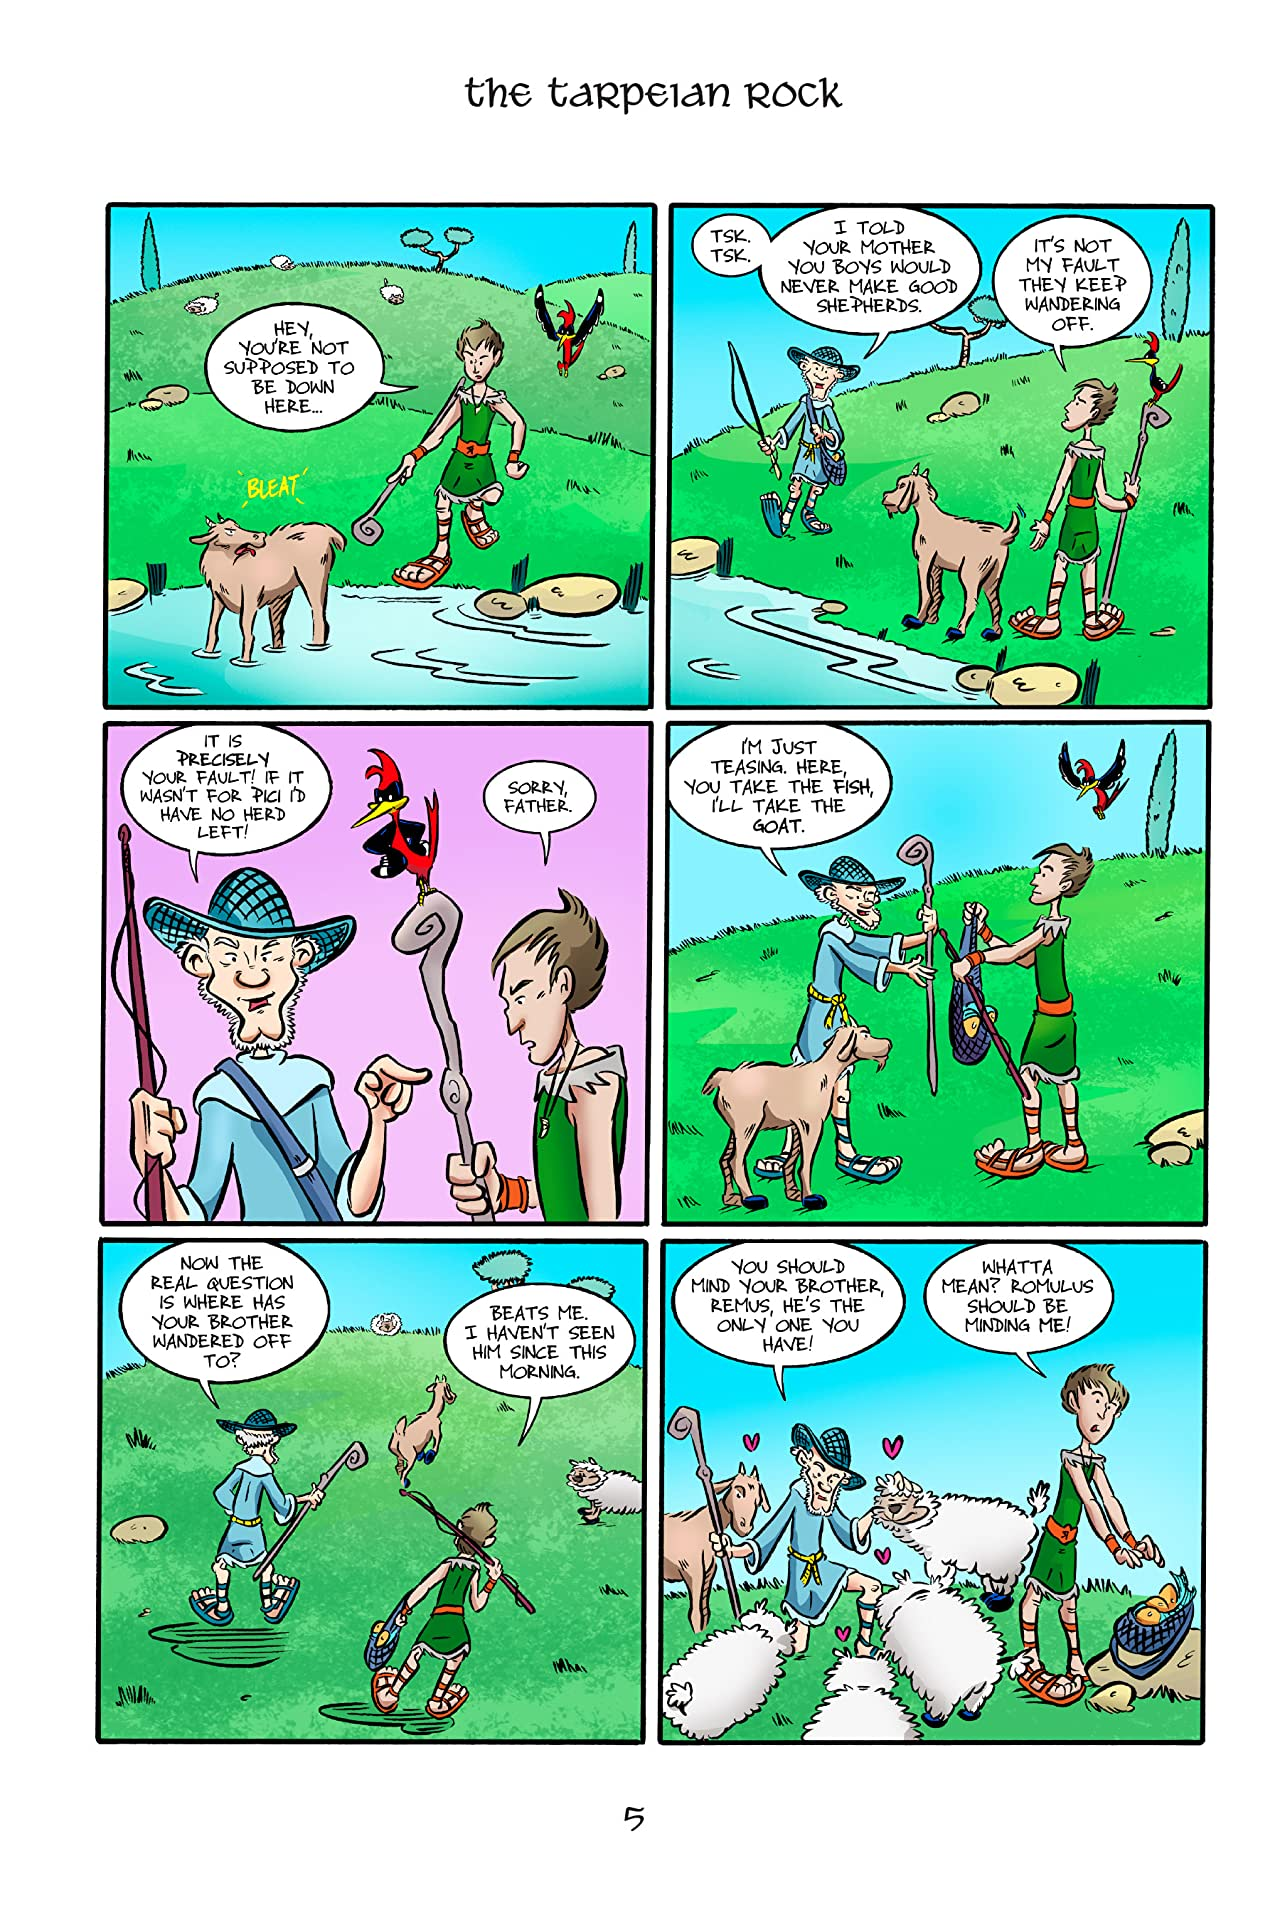 Kid Beowulf: The Tarpeian Rock #2